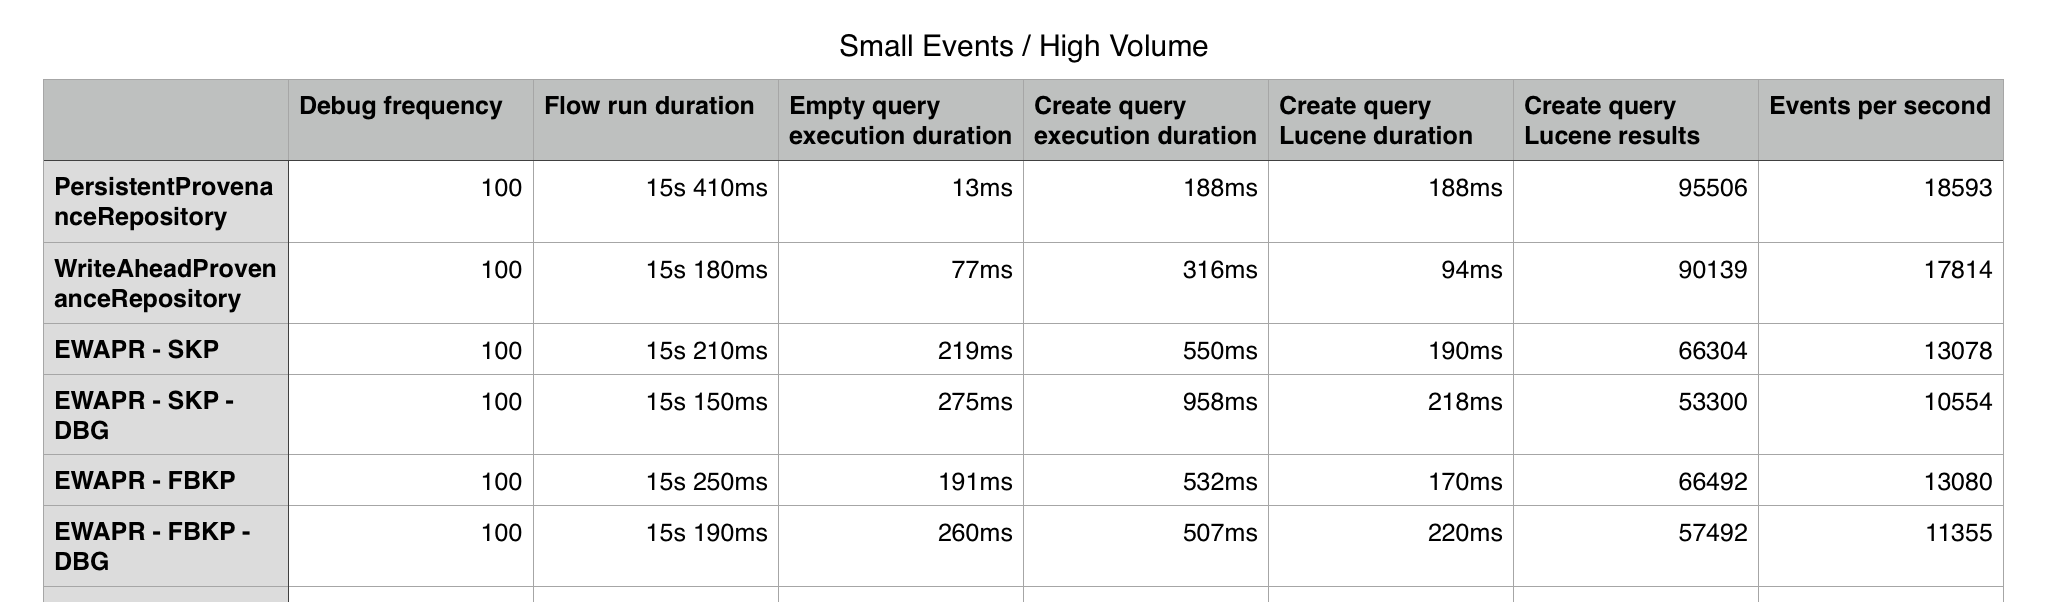 Small event size, high volume